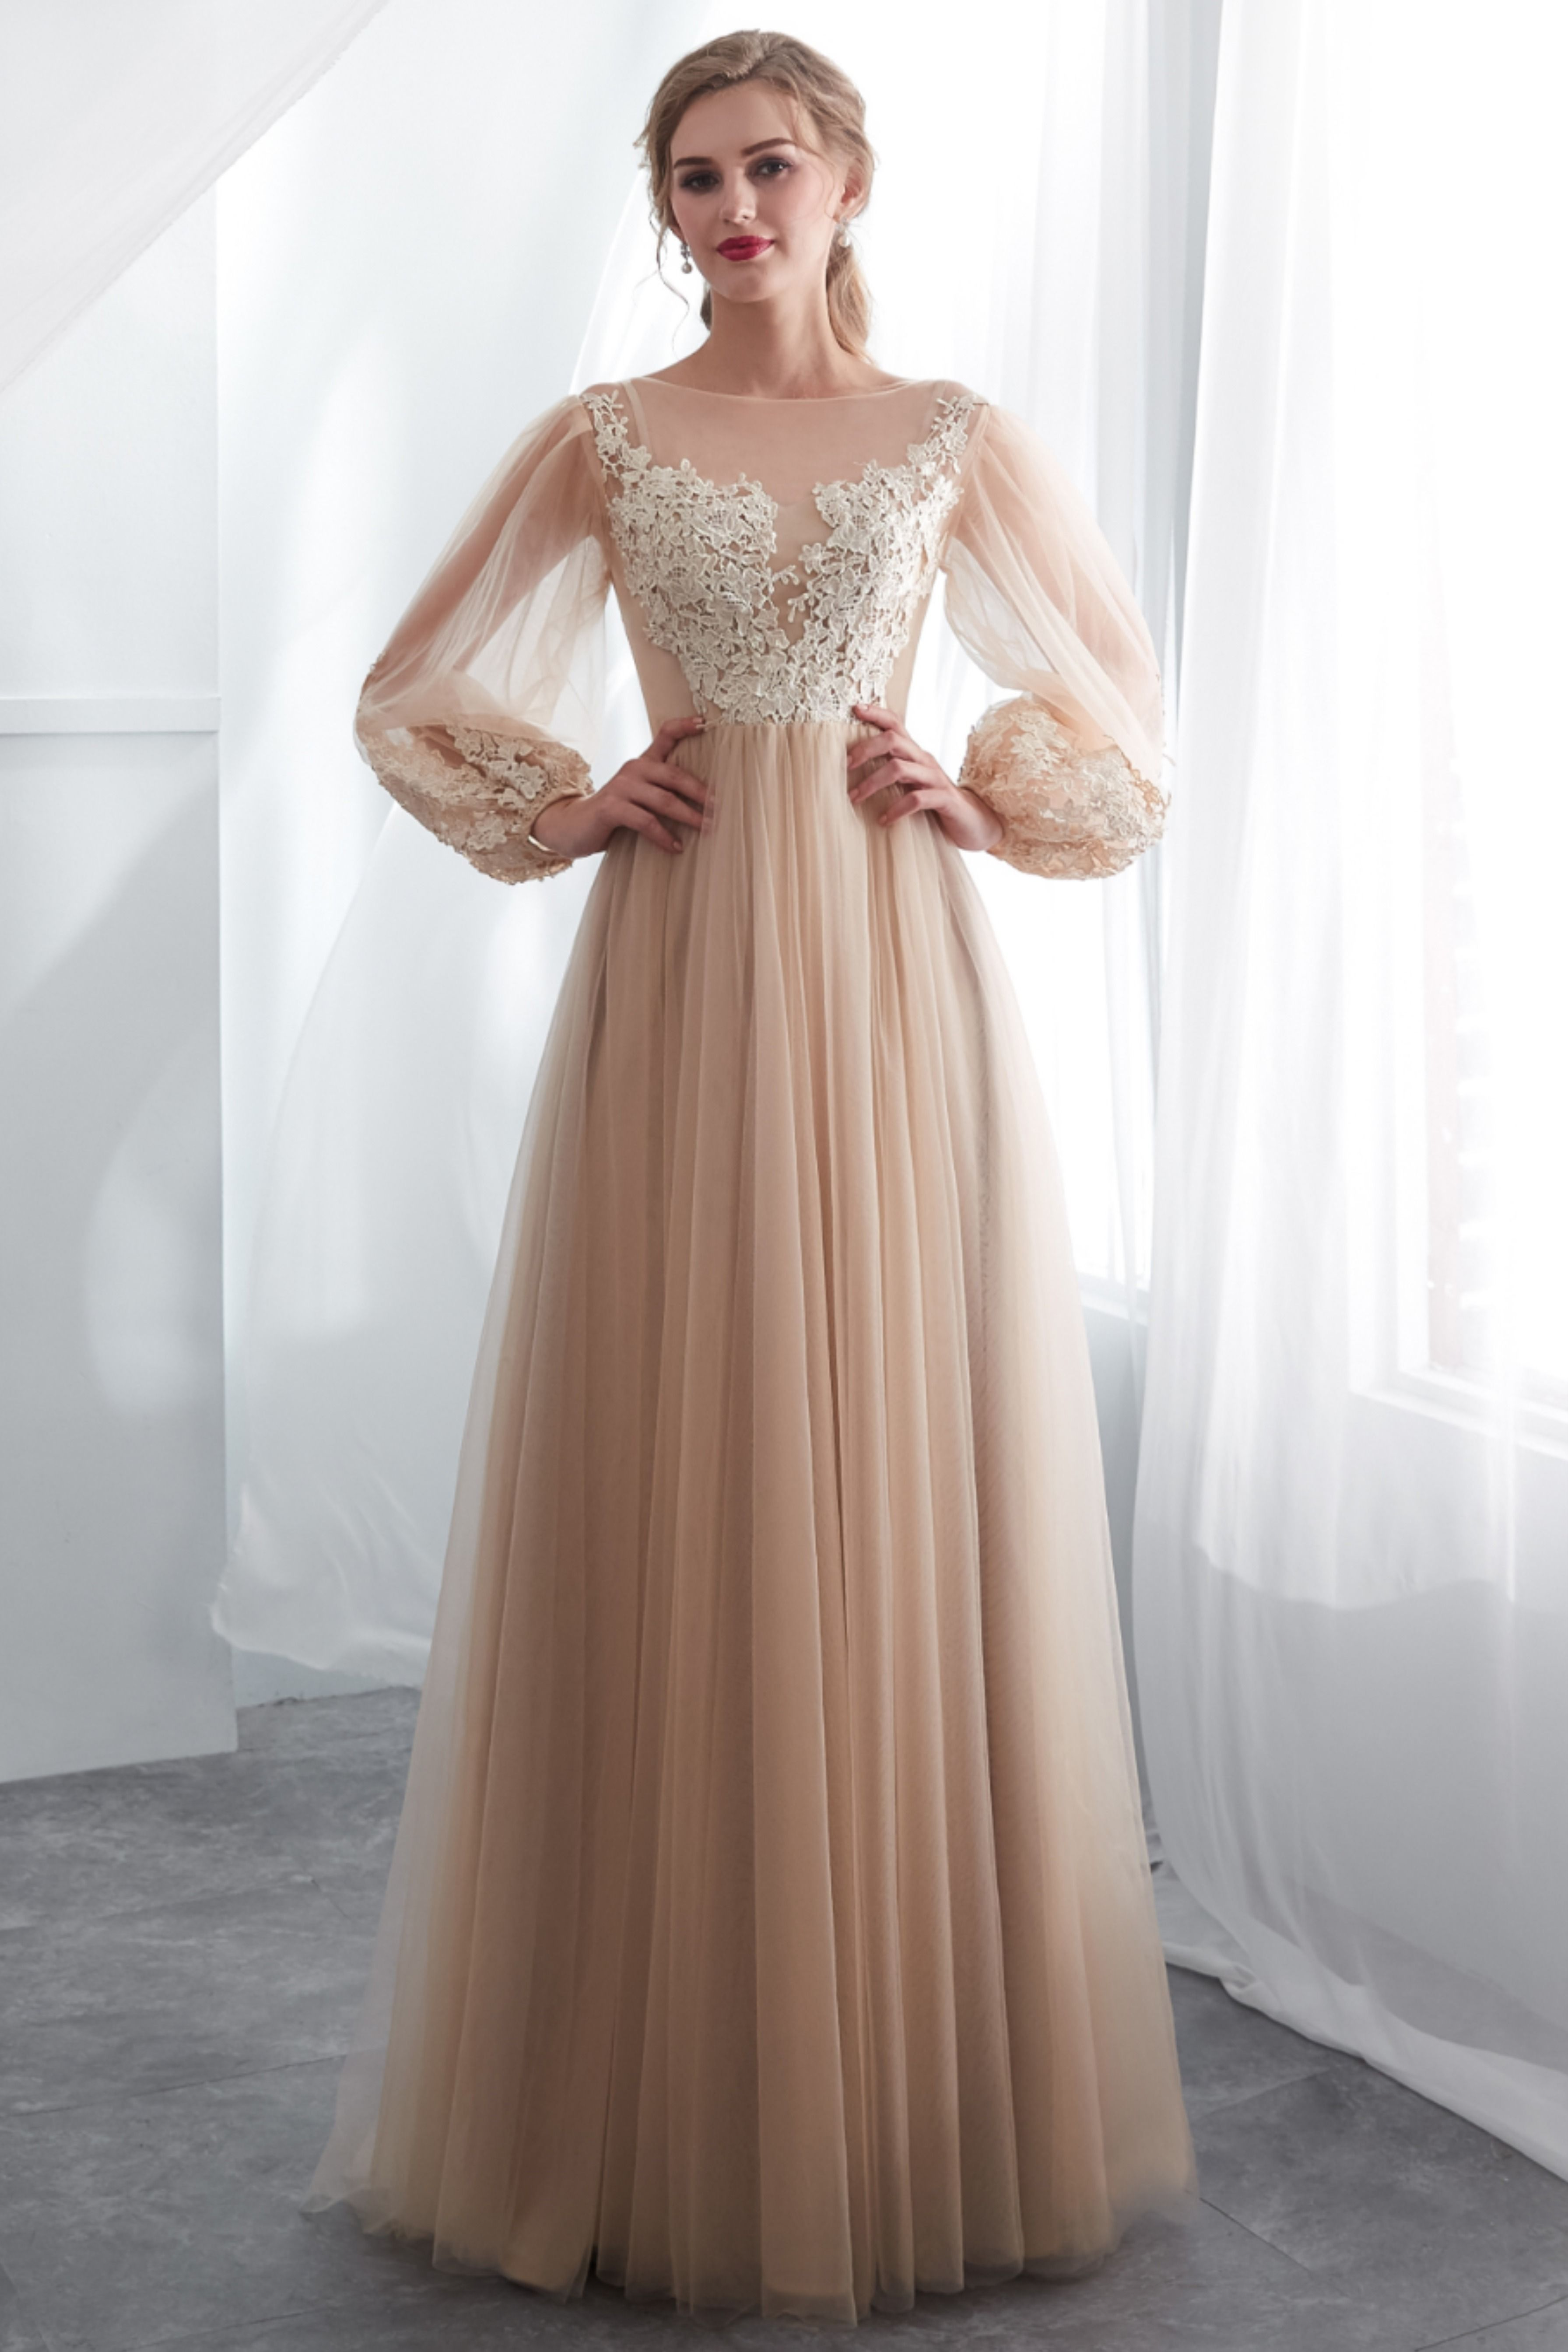 Bell Sleeves Champagne Formal Floor Length Dress Champagne Evening Dress Evening Dresses Long Prom Dresses With Sleeves